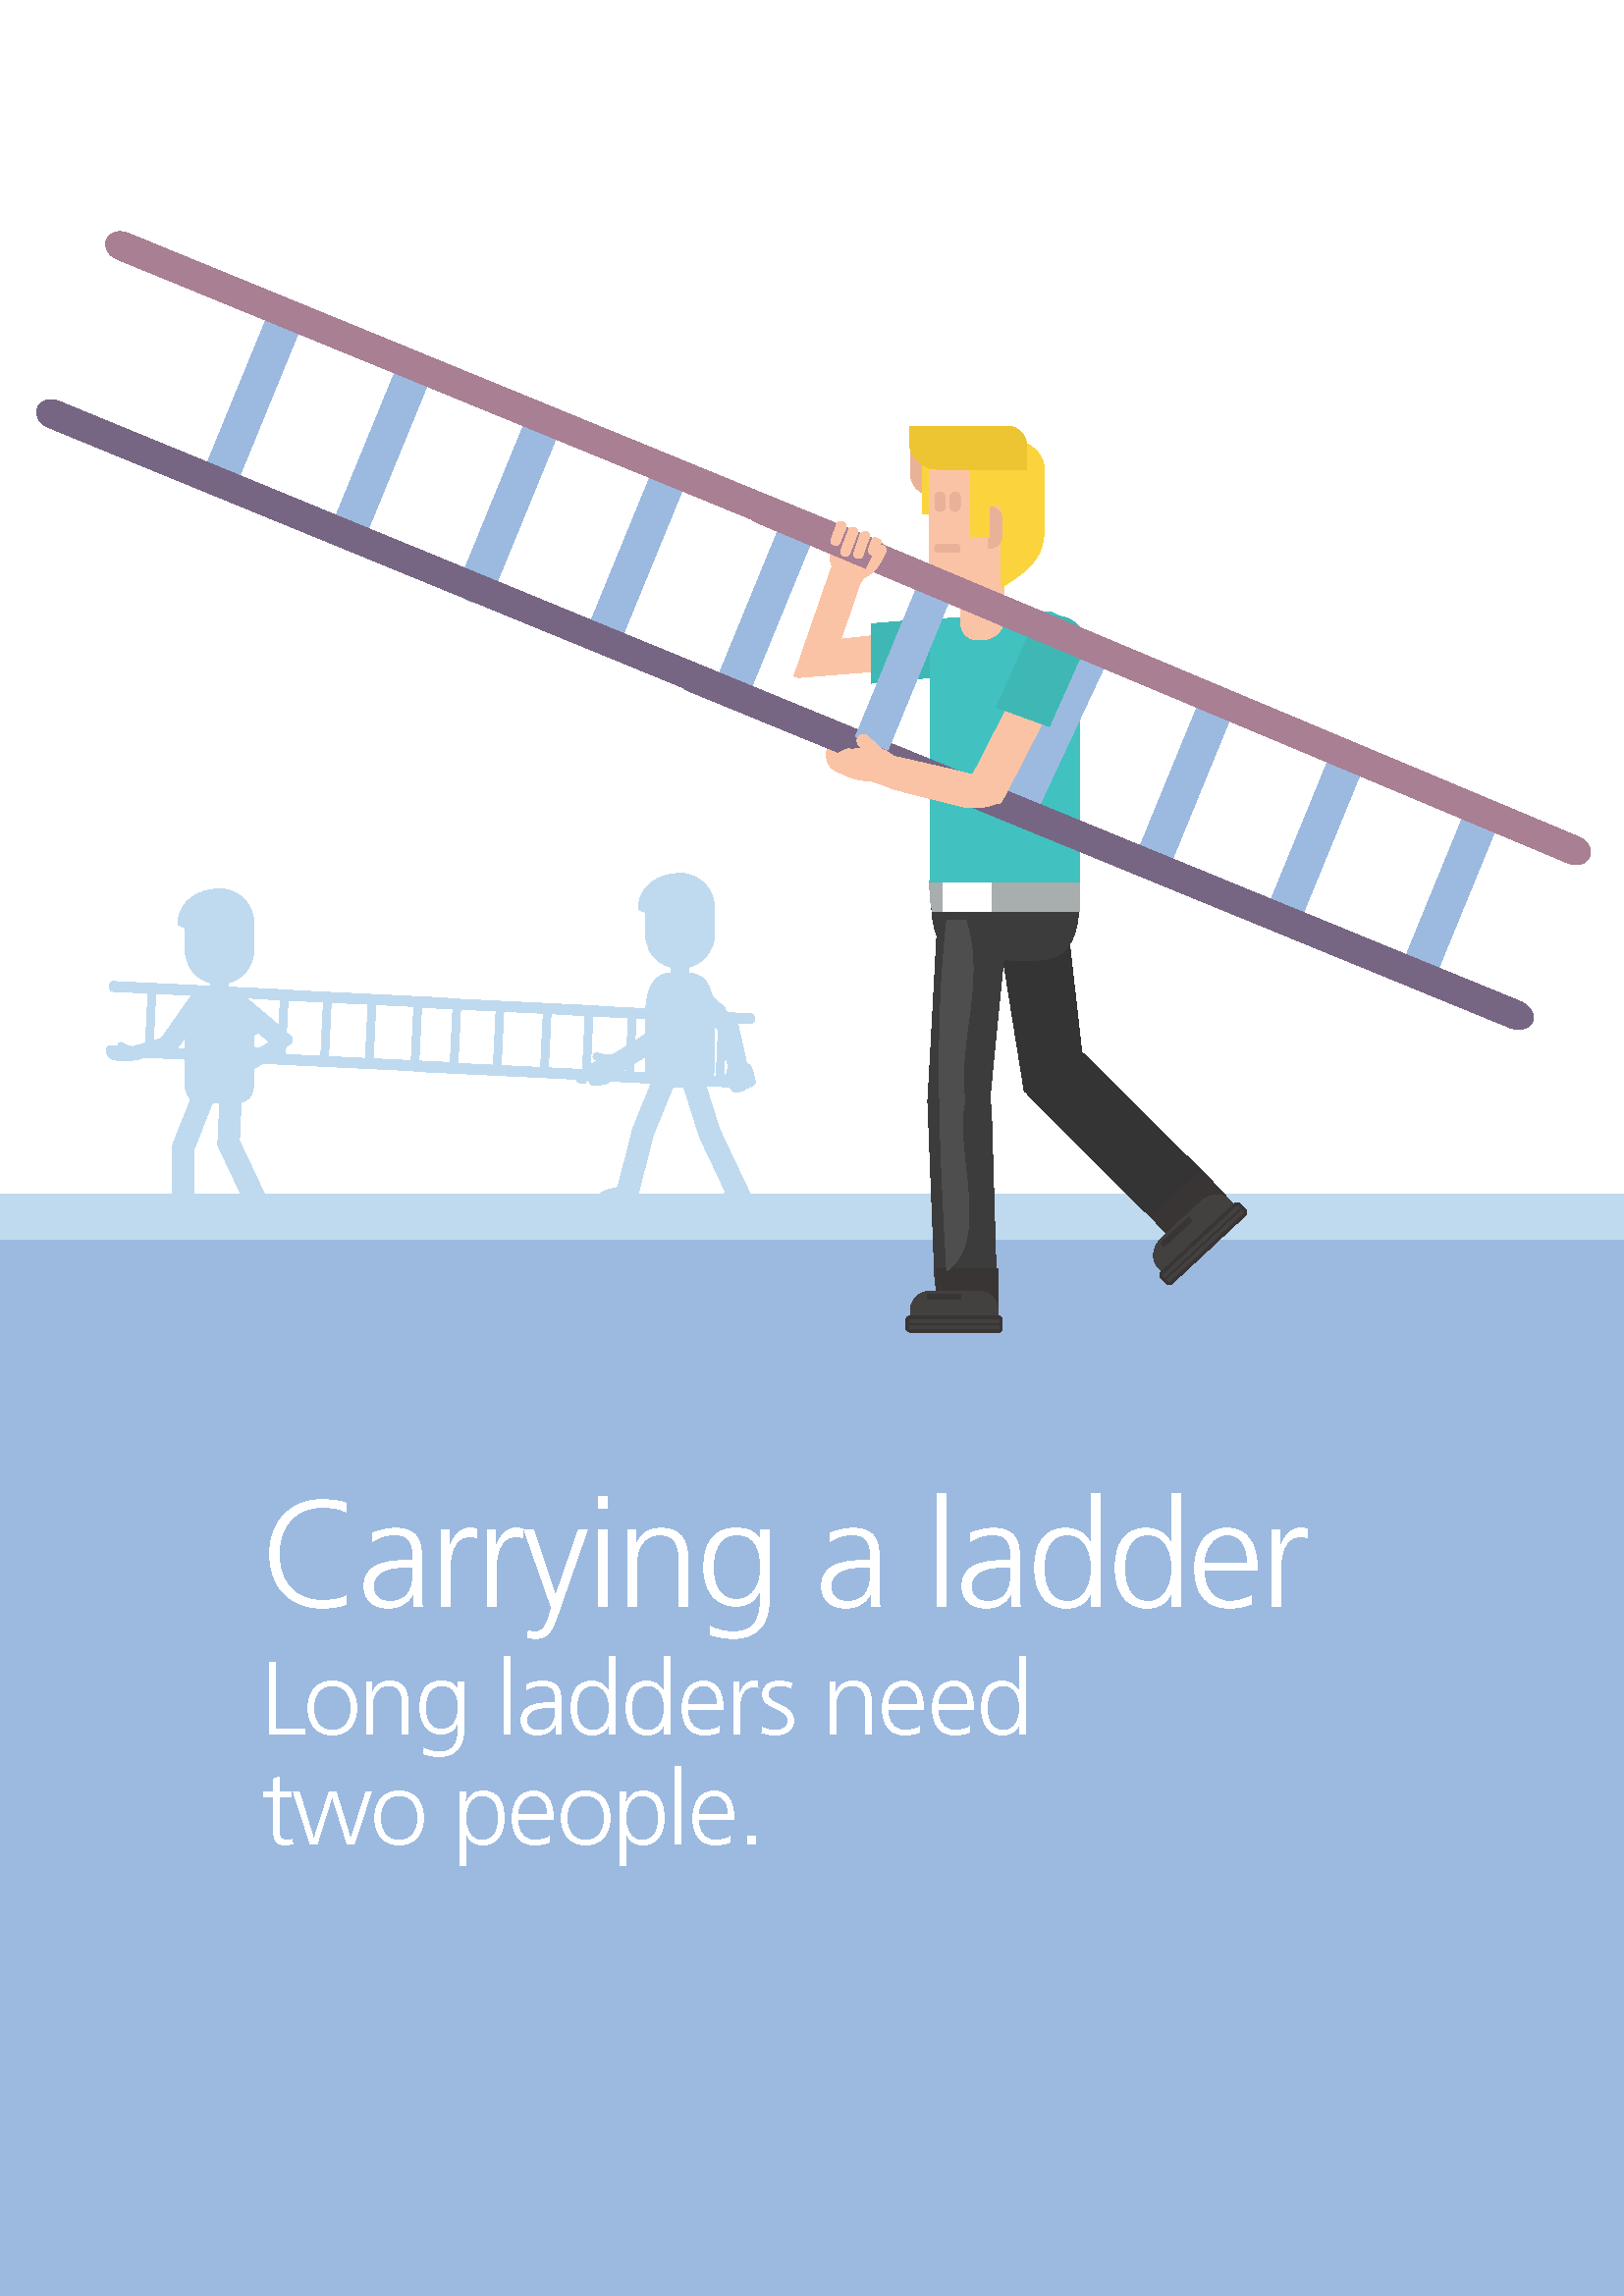 Carrying a long ladder requires two people